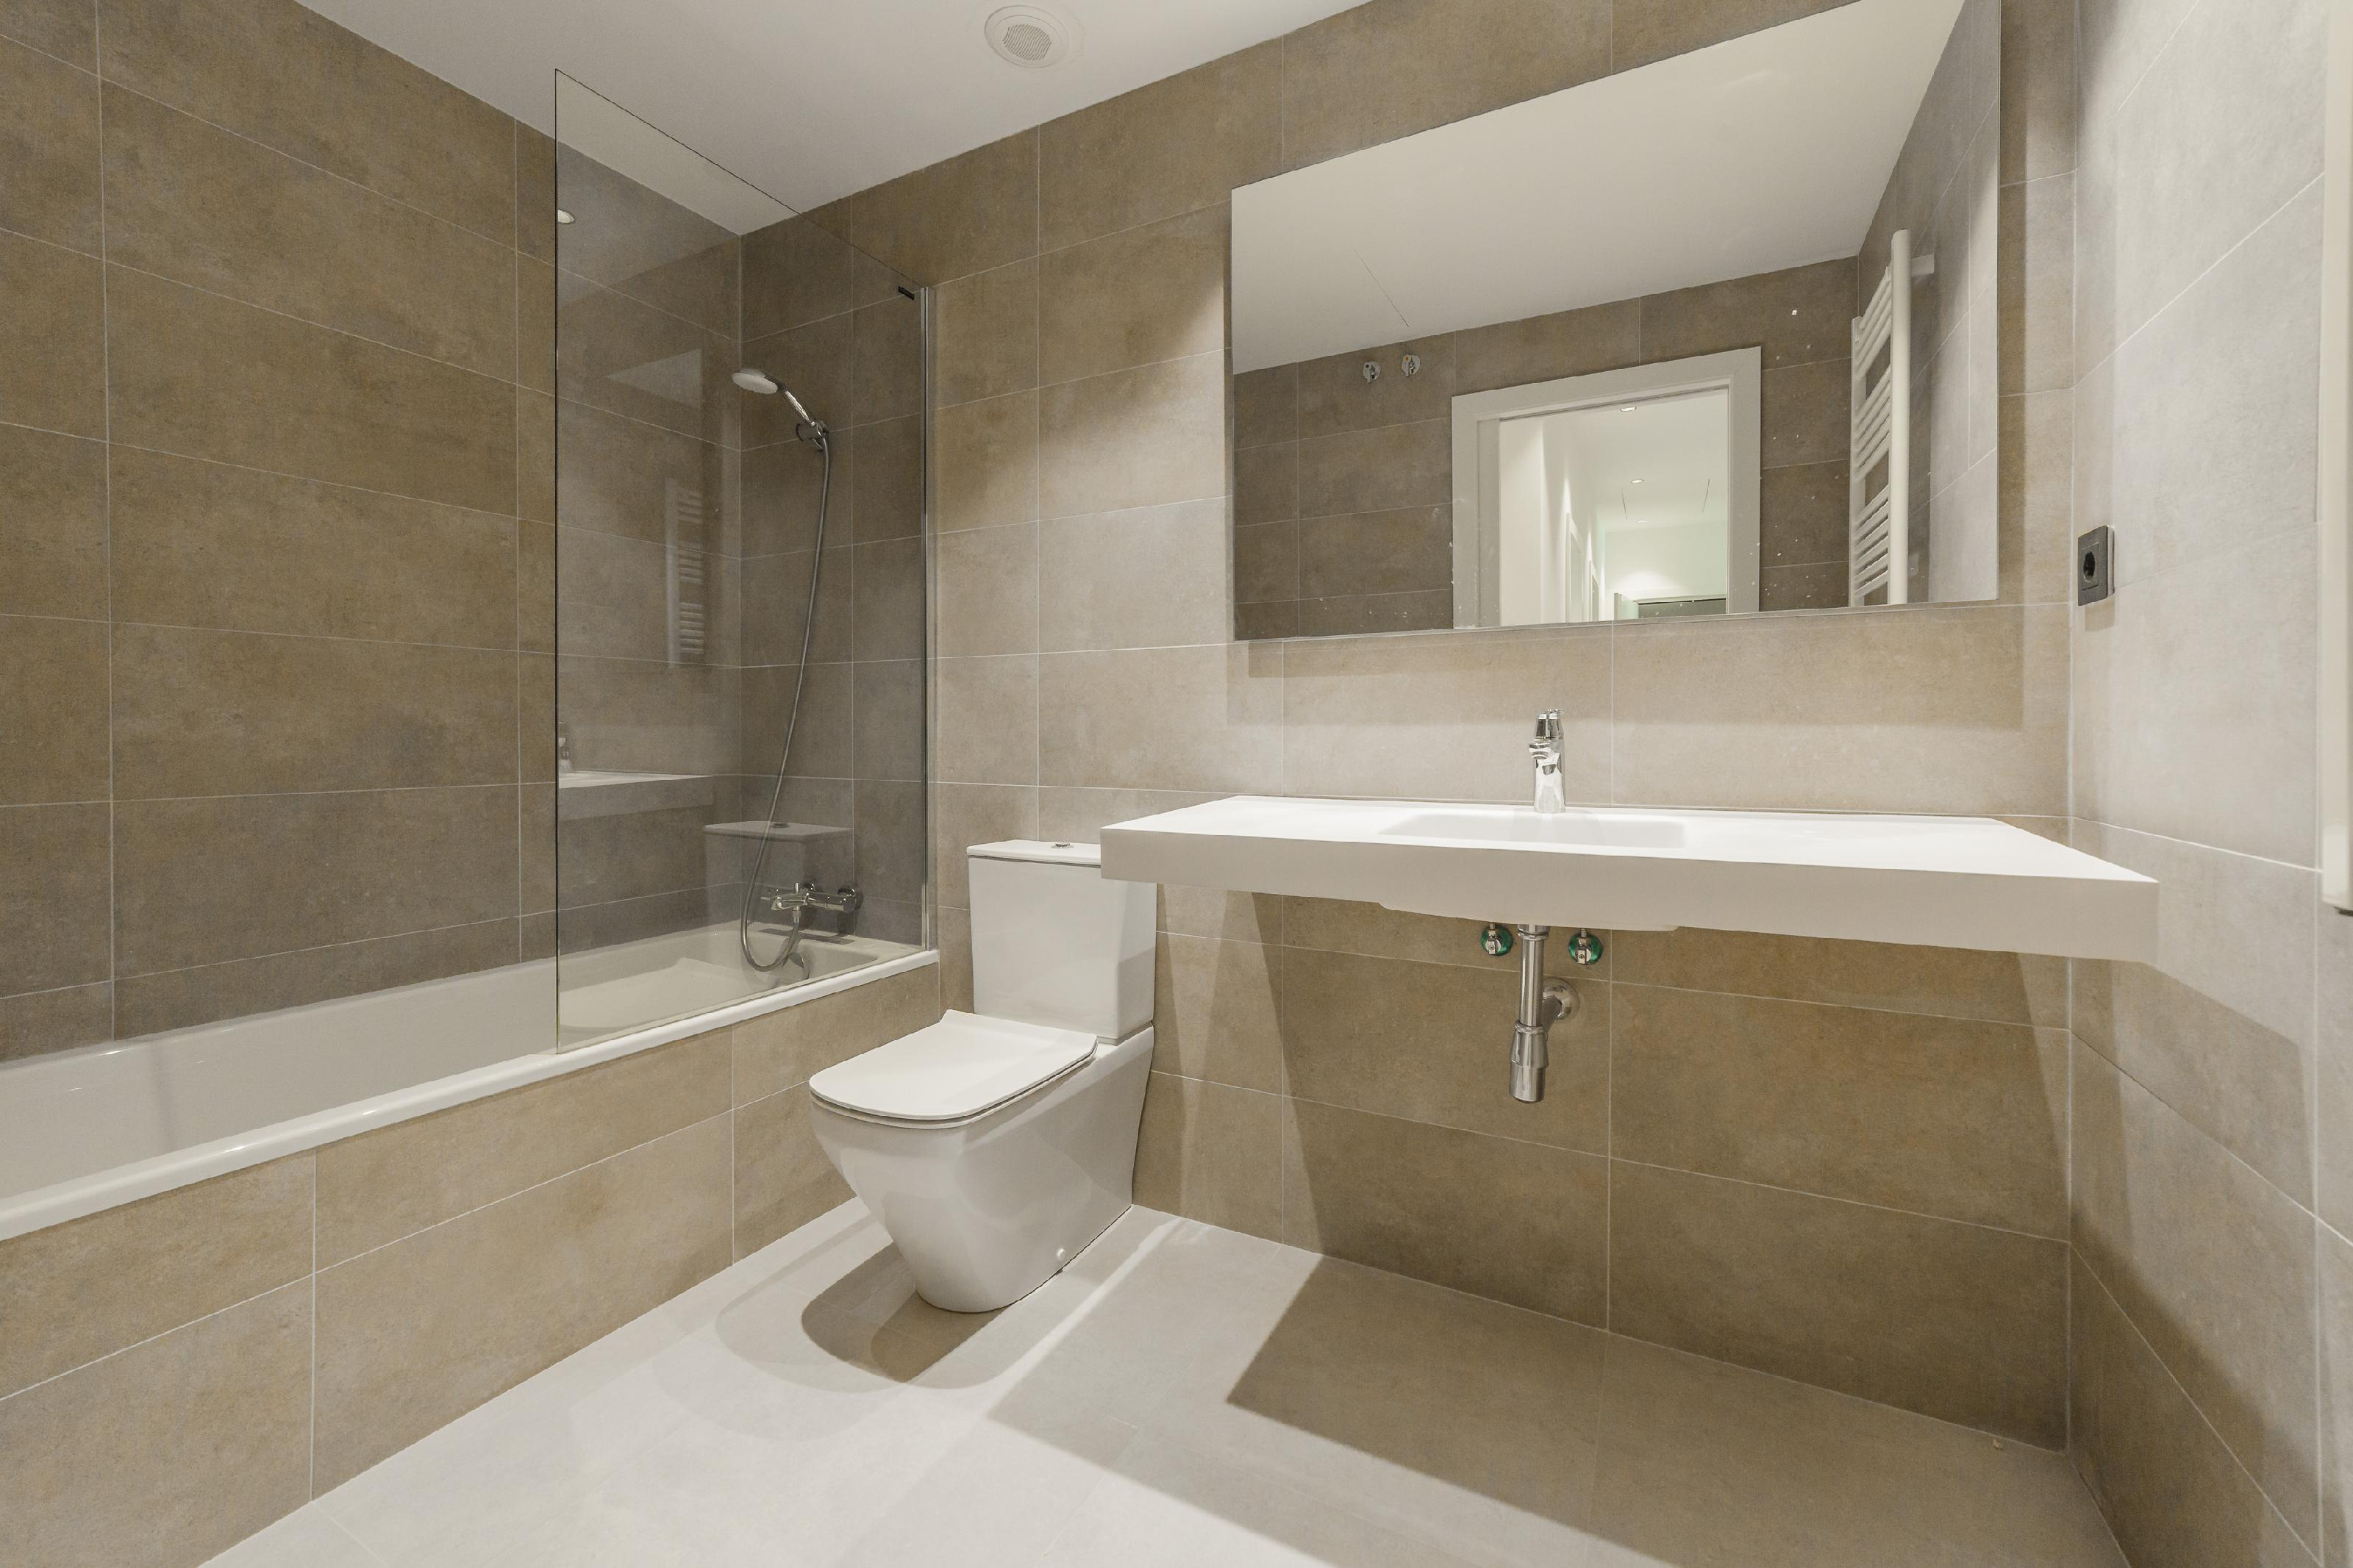 182474 Apartment for sale in Eixample, Old Left Eixample 31